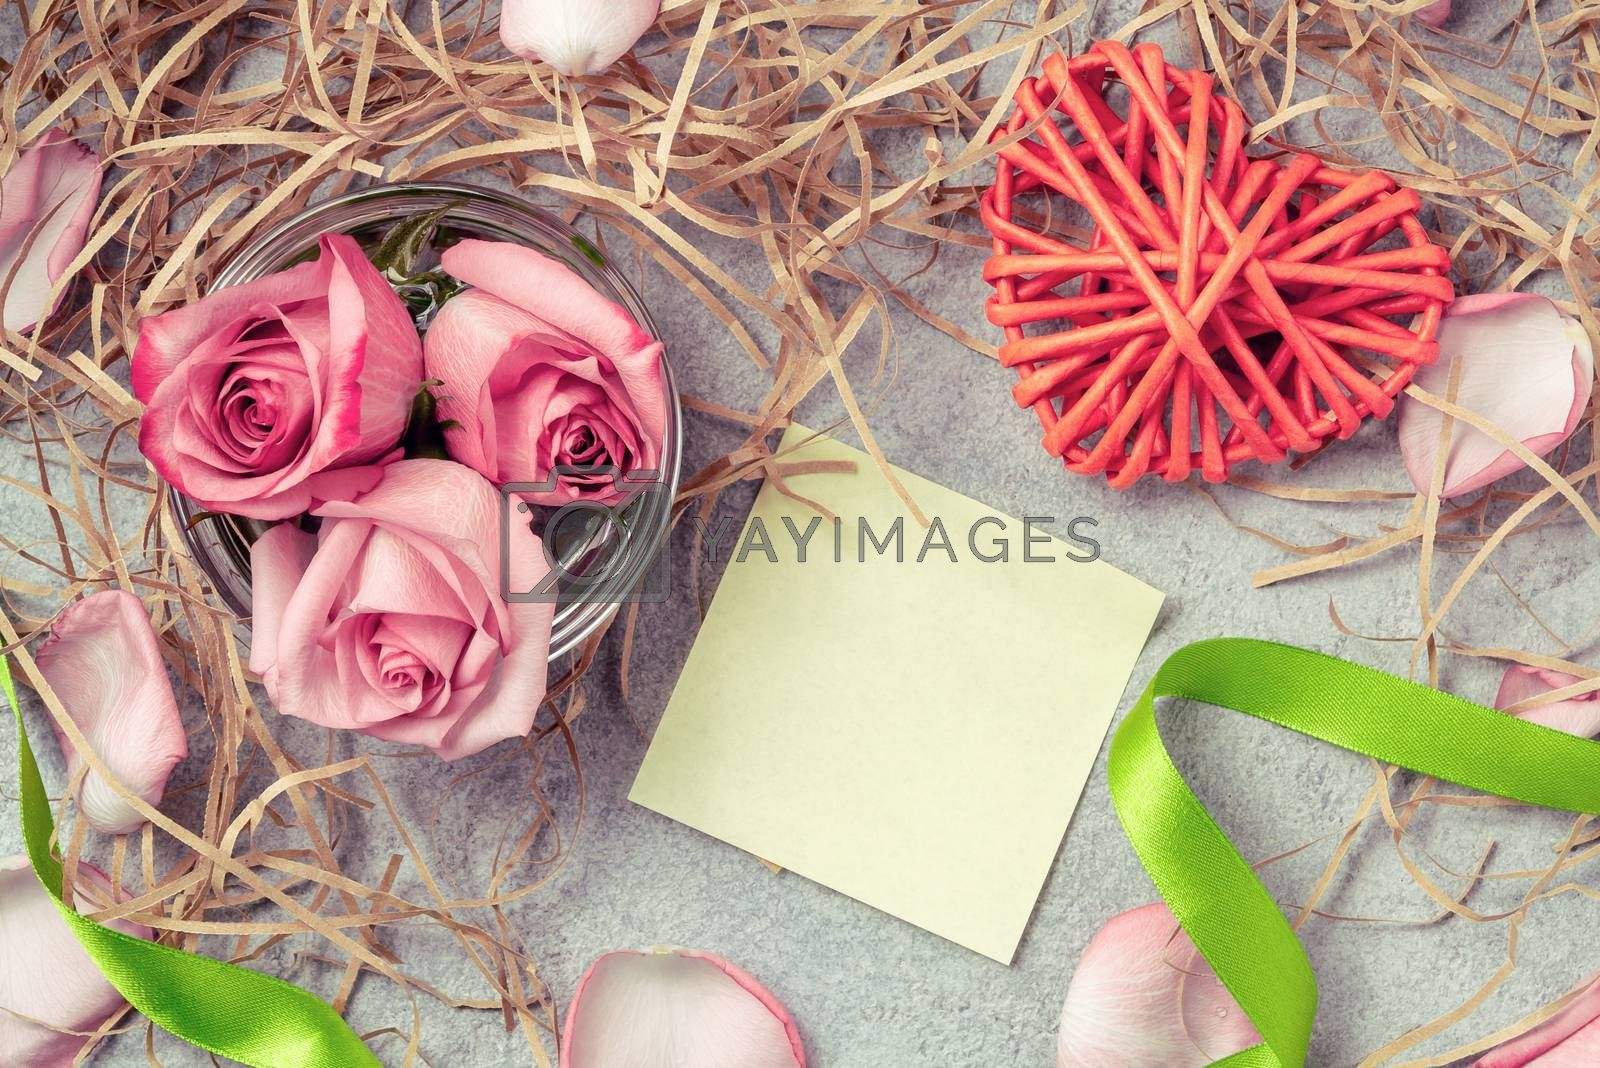 Pink roses in the water, a wicker heart, ornaments and an empty form for a note on the table by galsand